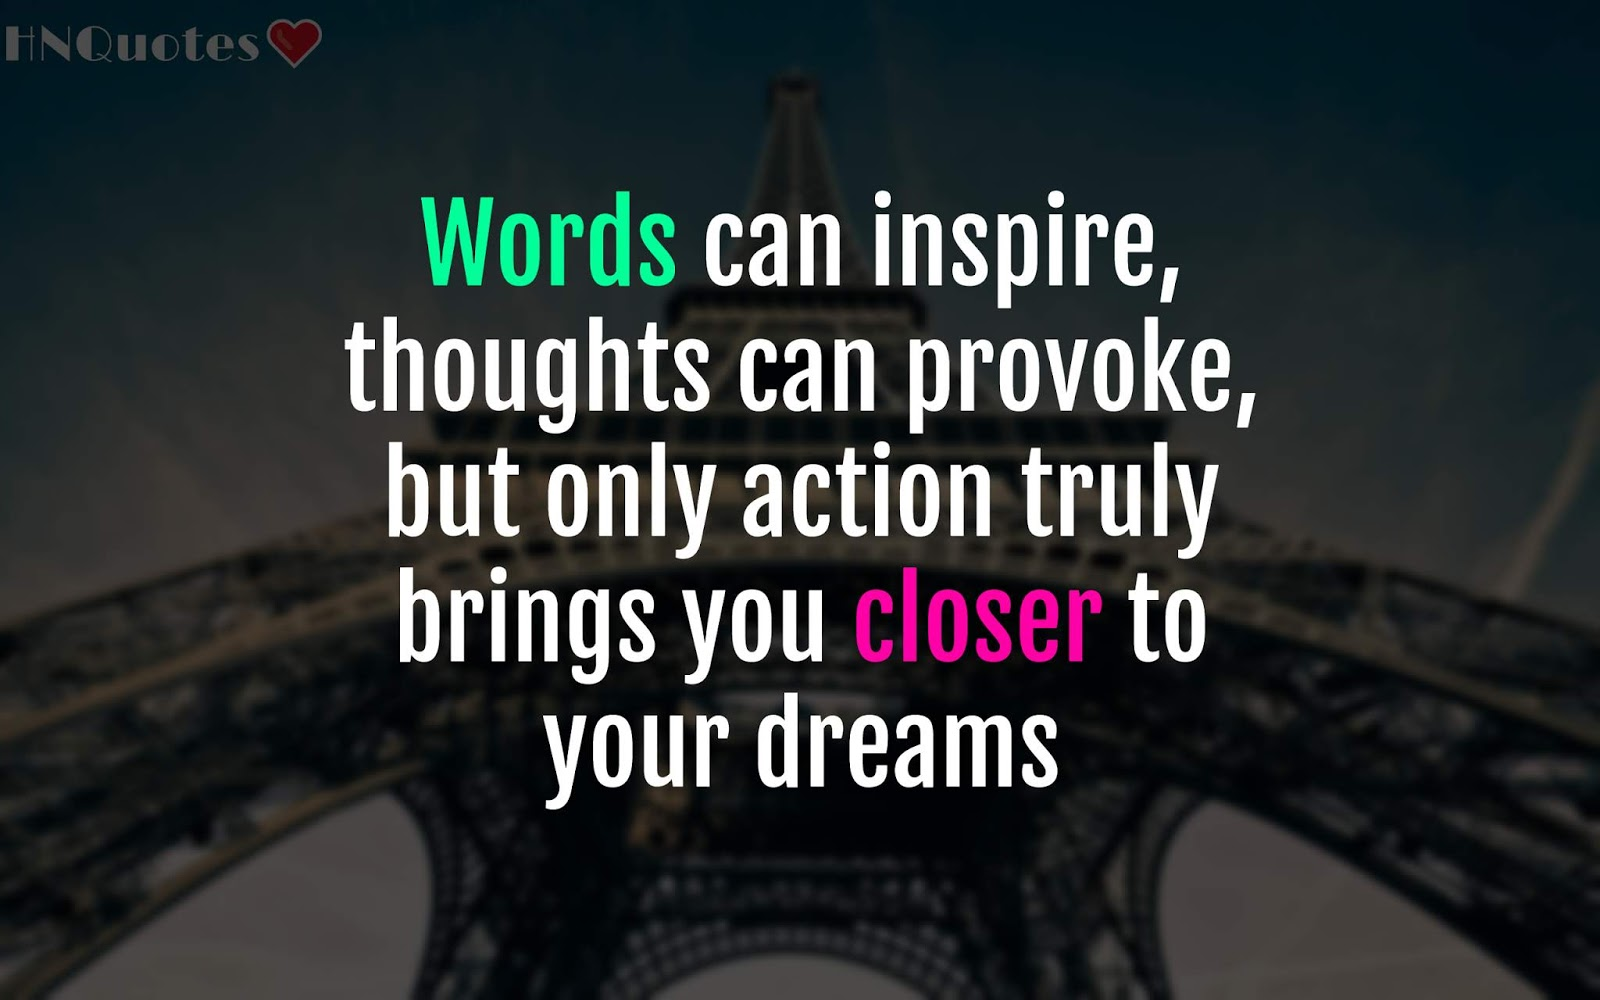 Inspirational-Quotes-On-Everyday-Life-Motivational-Sayings-96-Beautiful-HNQuotes